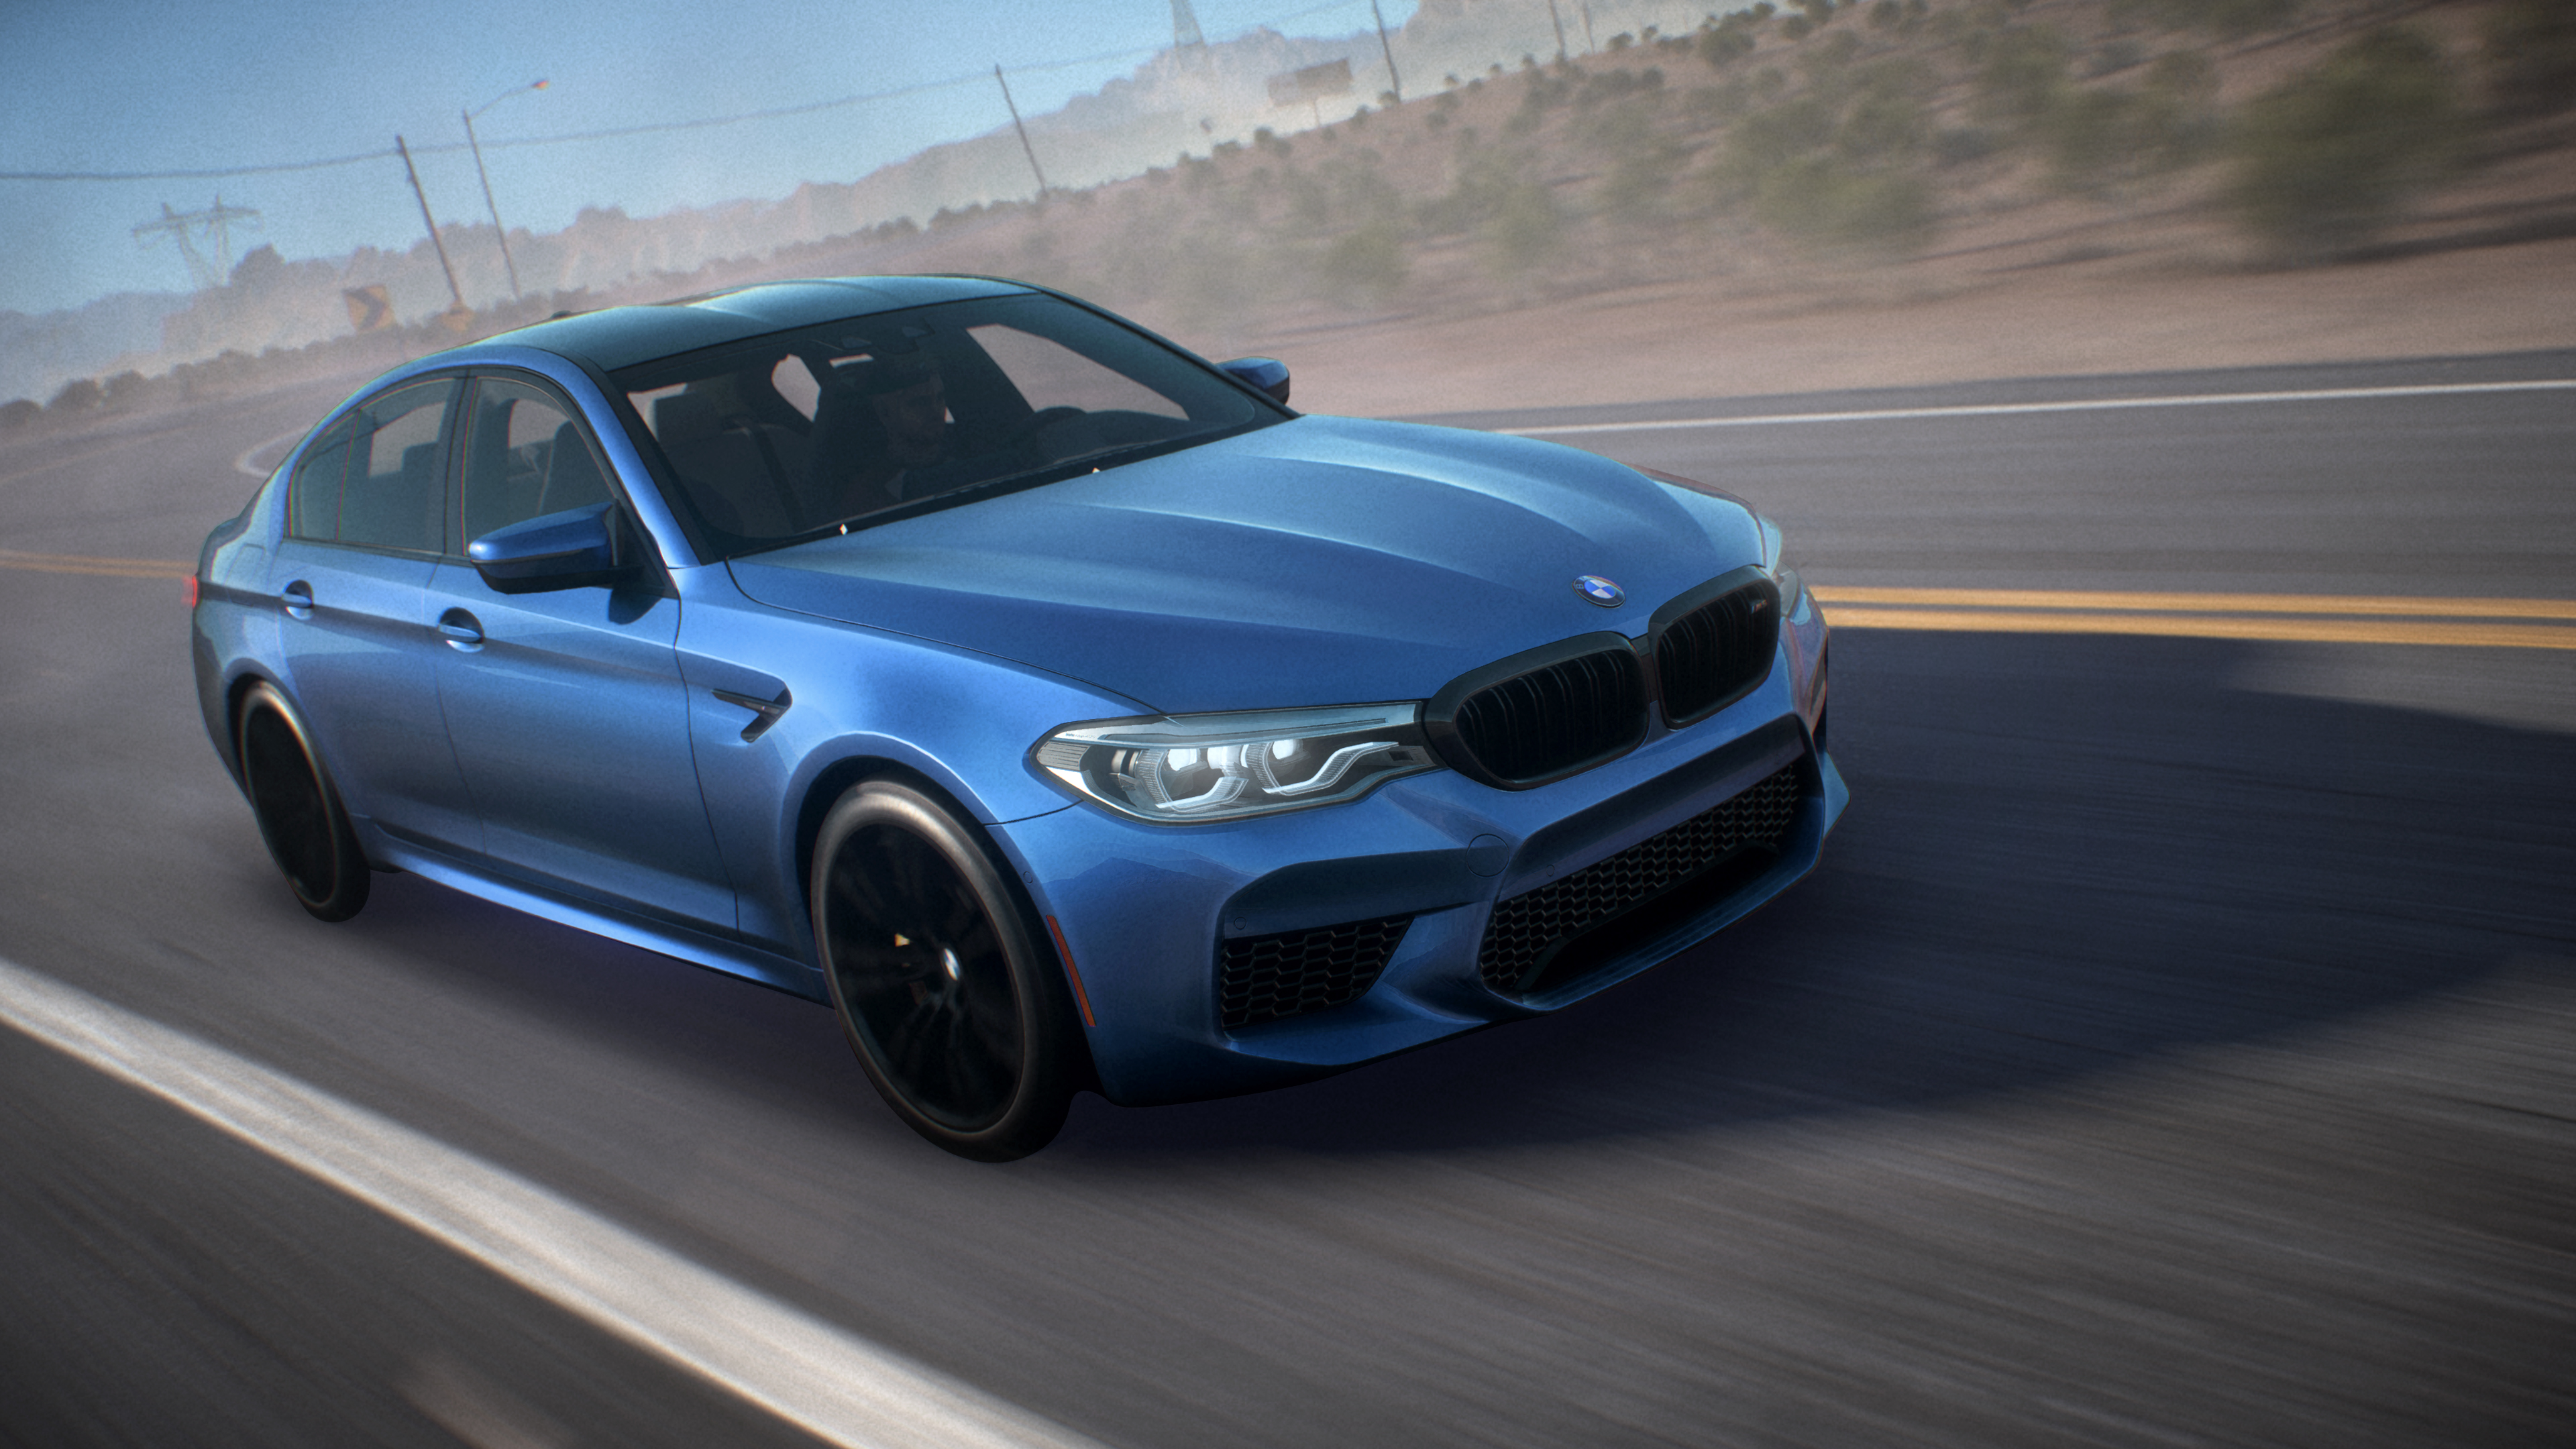 Drive The New BMW M5 First In Need For Speed Payback!